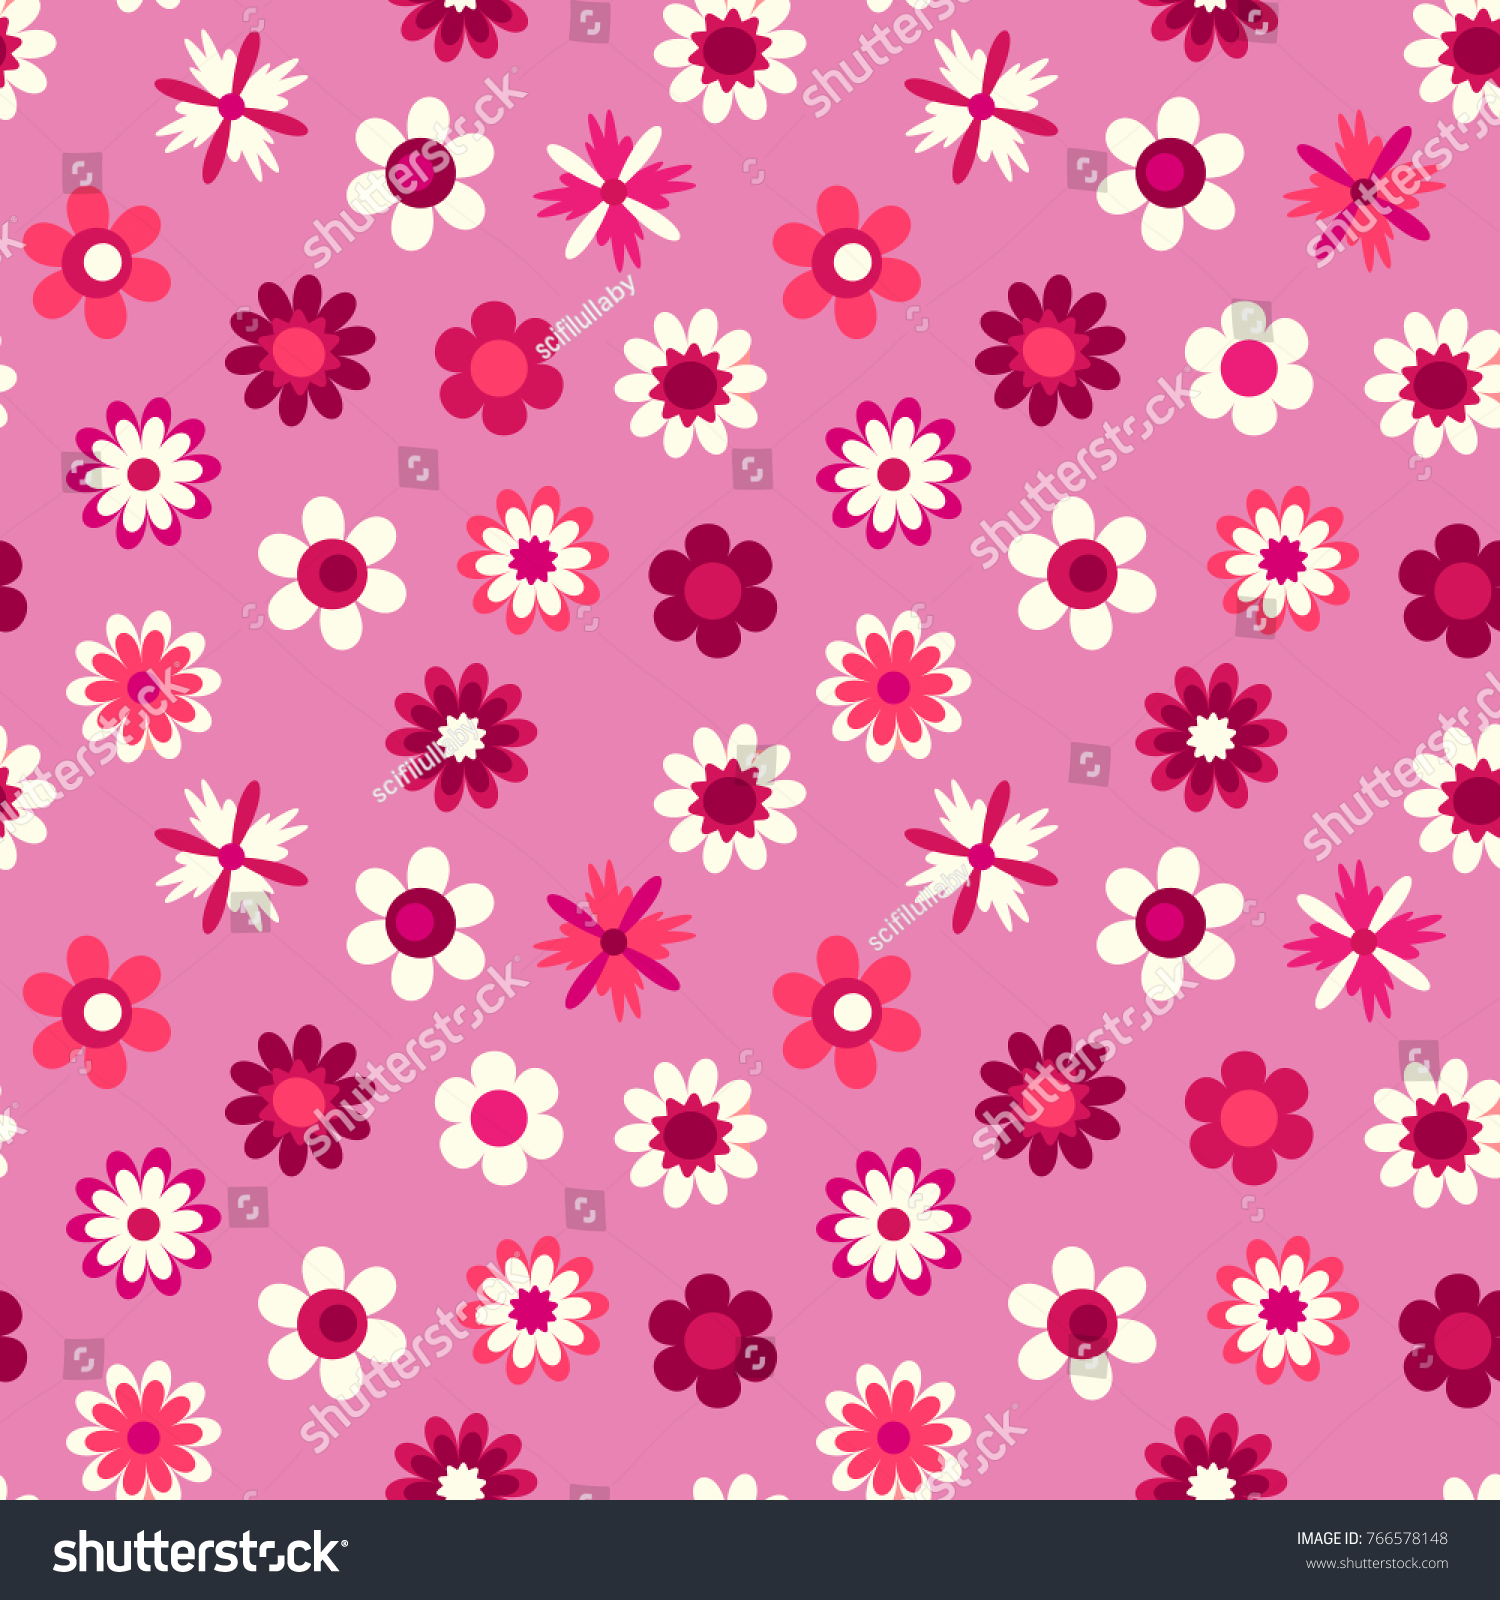 Royalty Free Stock Illustration Of Cute Seamless Pattern Cartoon